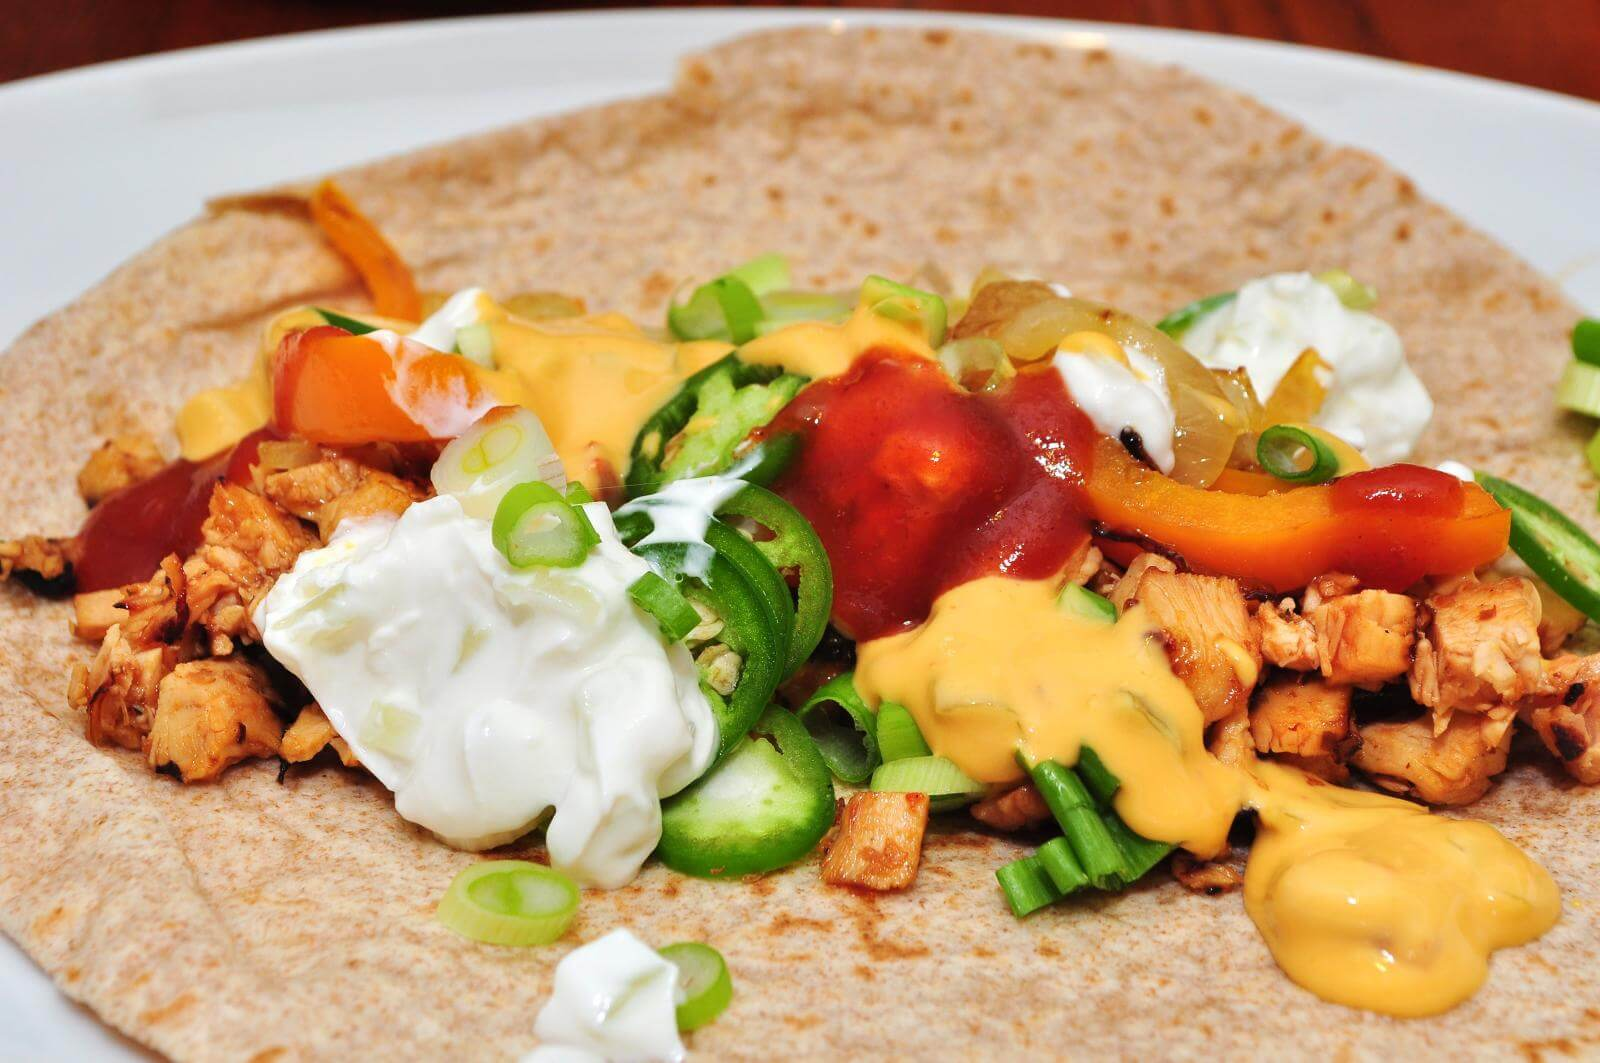 Fajita Recipes for Children